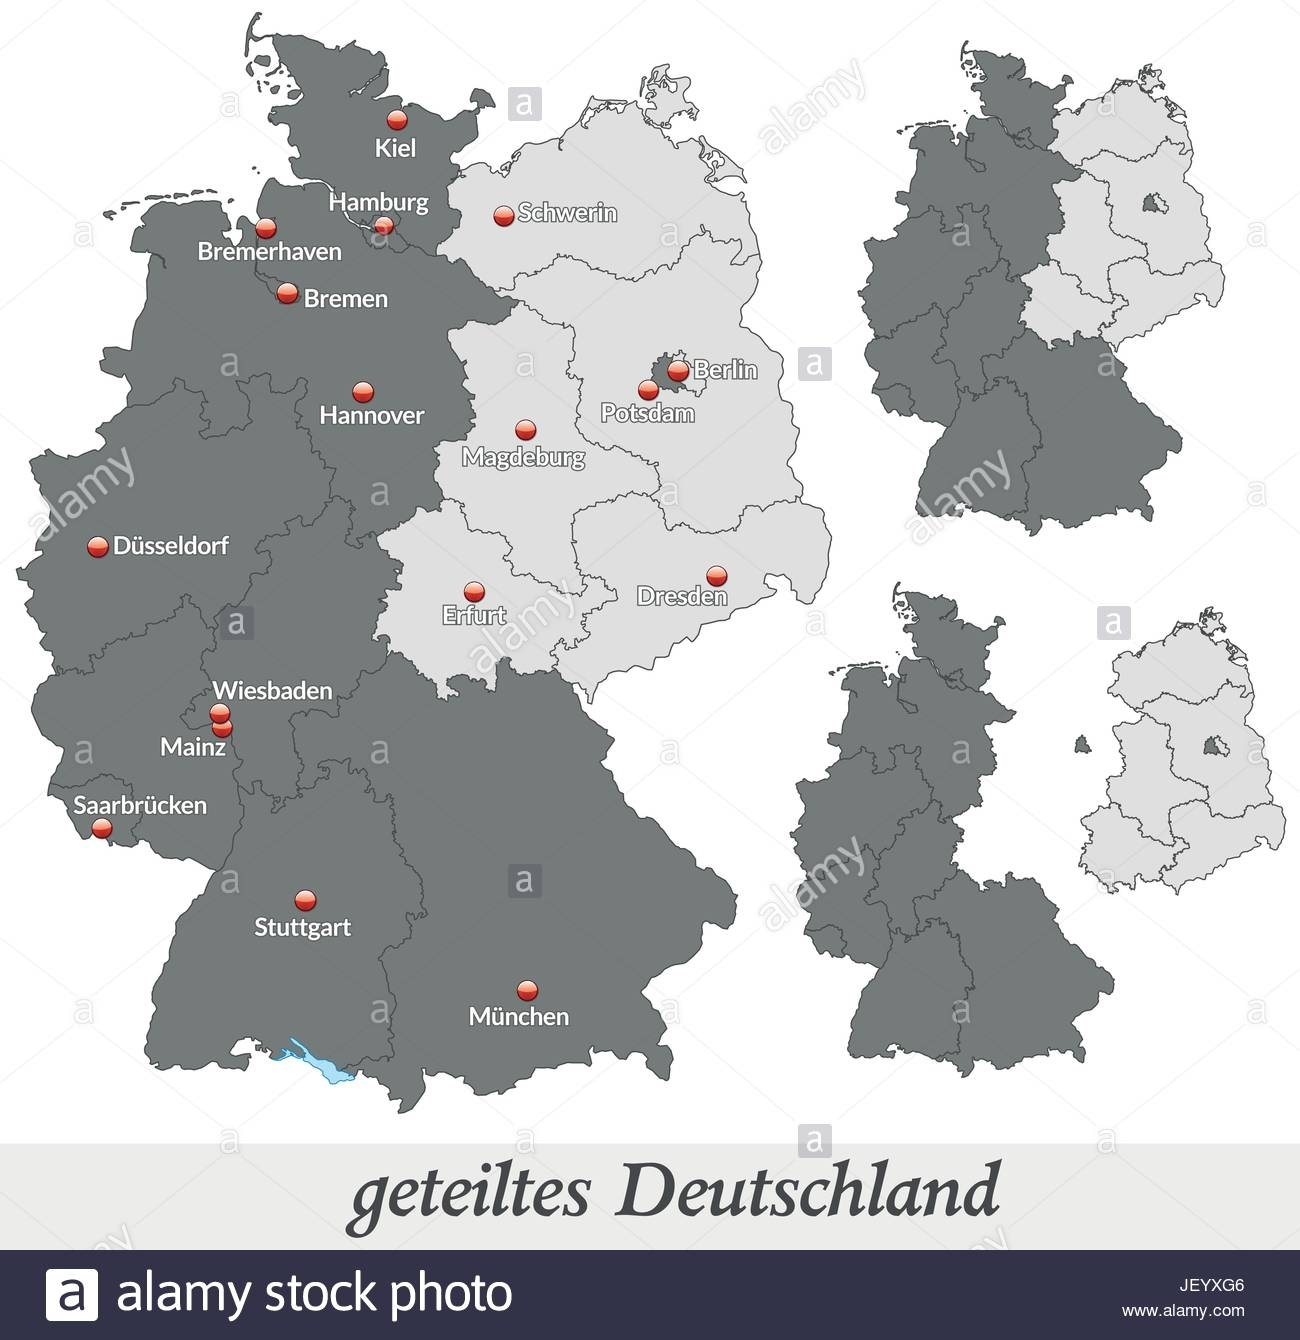 Map Of Divided Germany In Gray Stock Vector Art & Illustration regarding Divided Germany Map